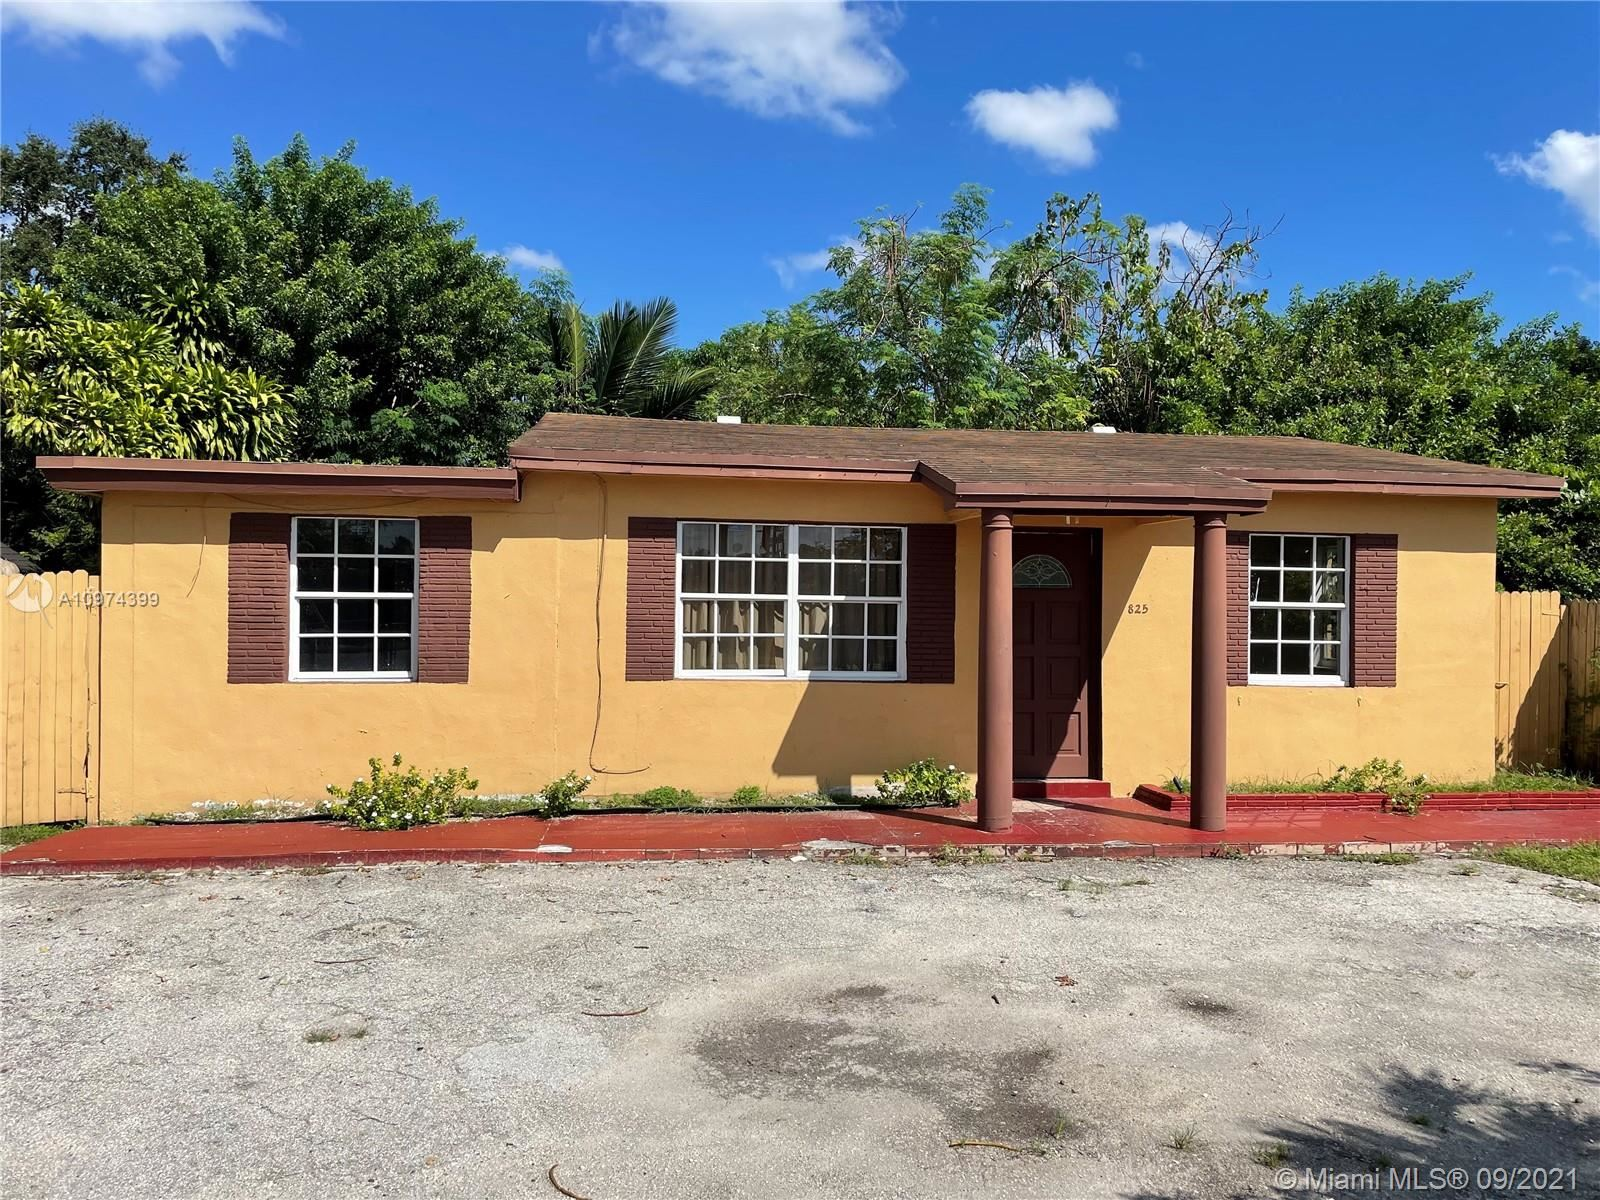 825 S 62nd Ave, Hollywood, FL 33023 - #: A10974399